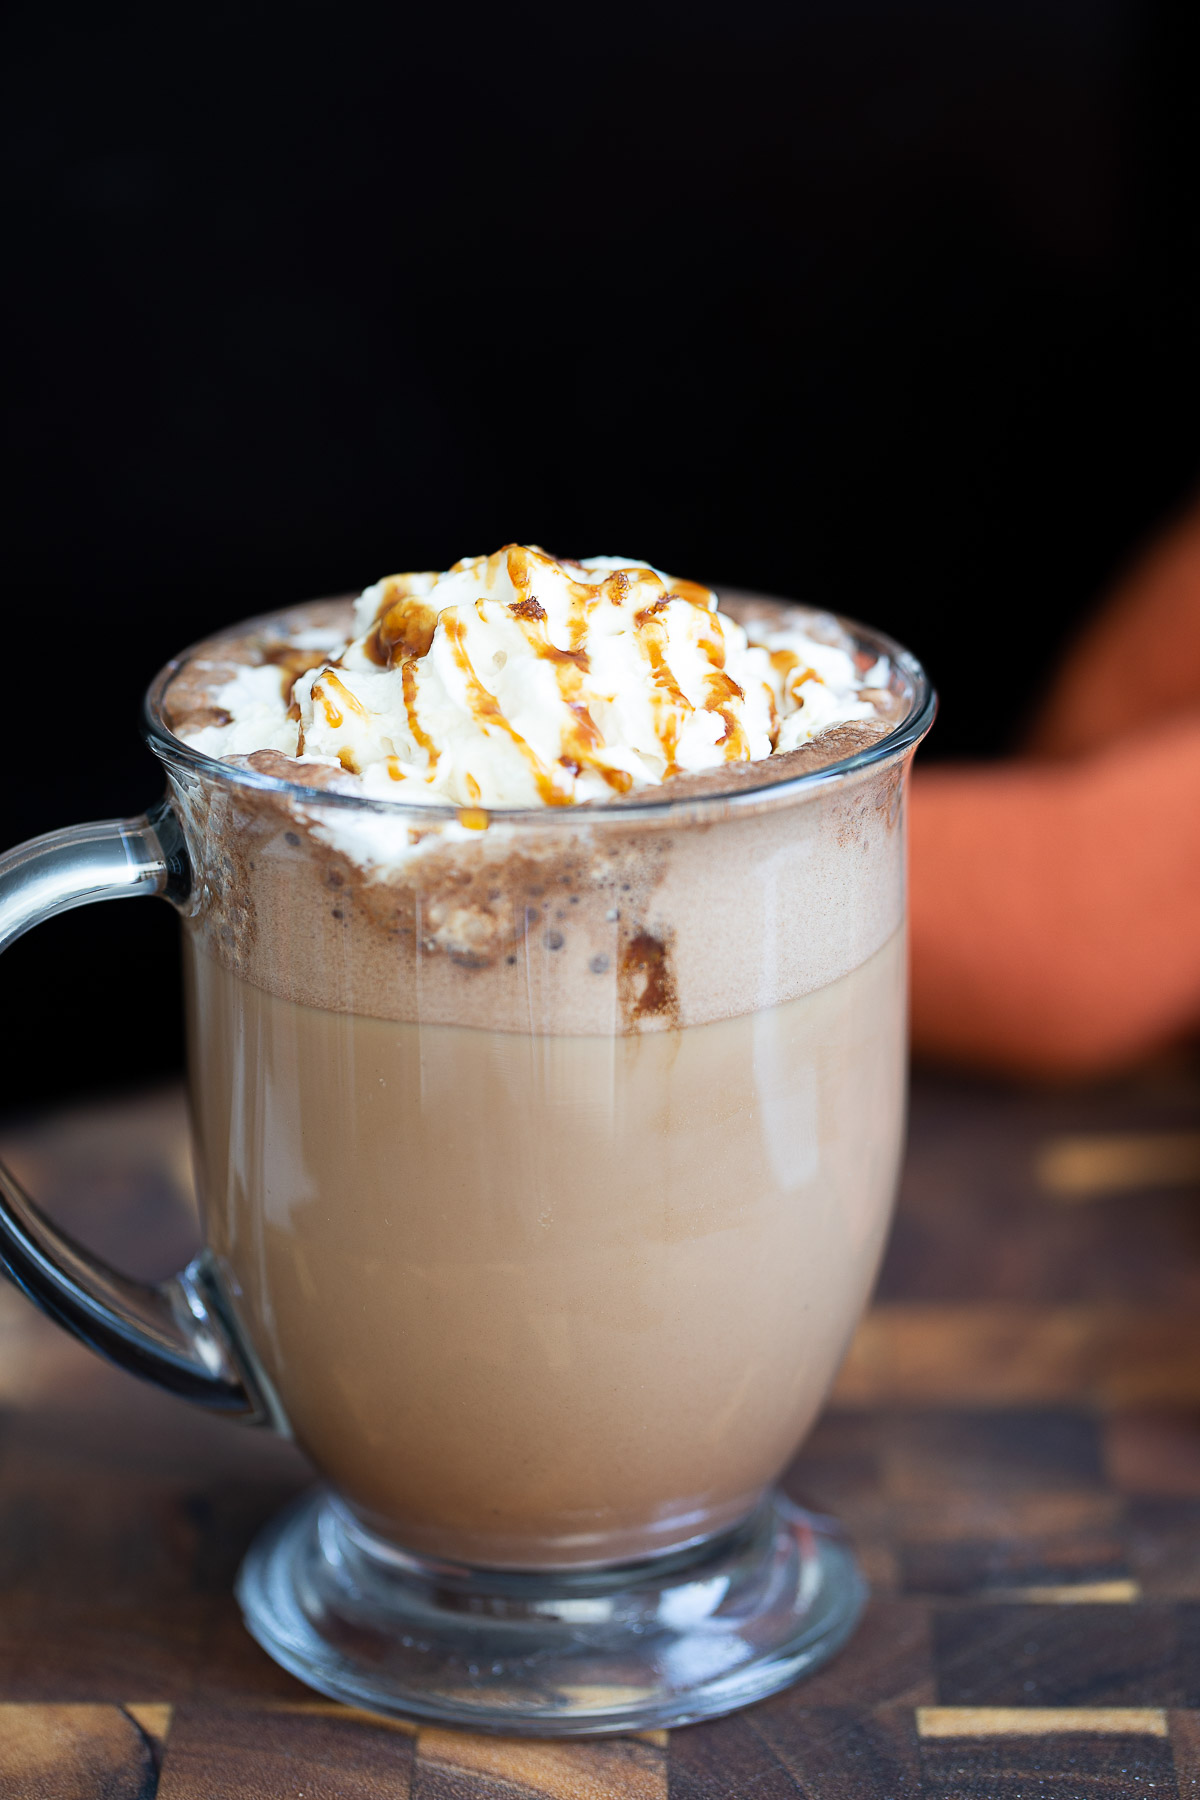 a mug of salted caramel mocha with whipped cream